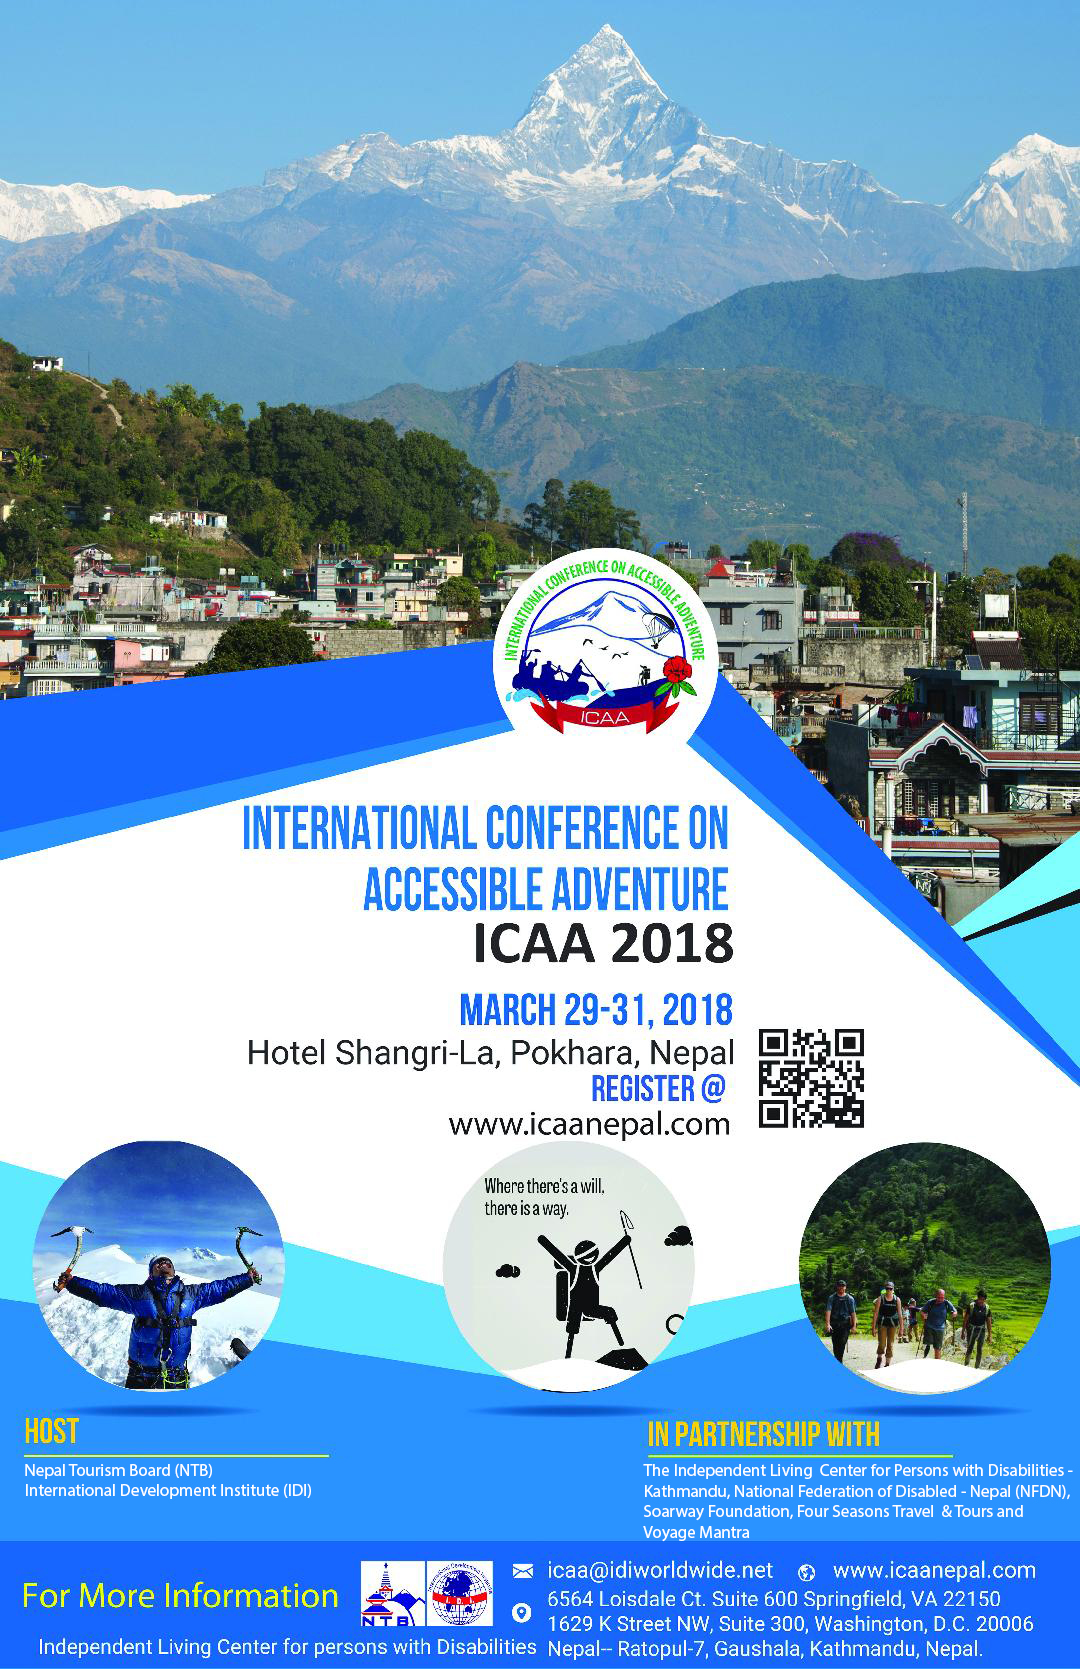 ICCA poster